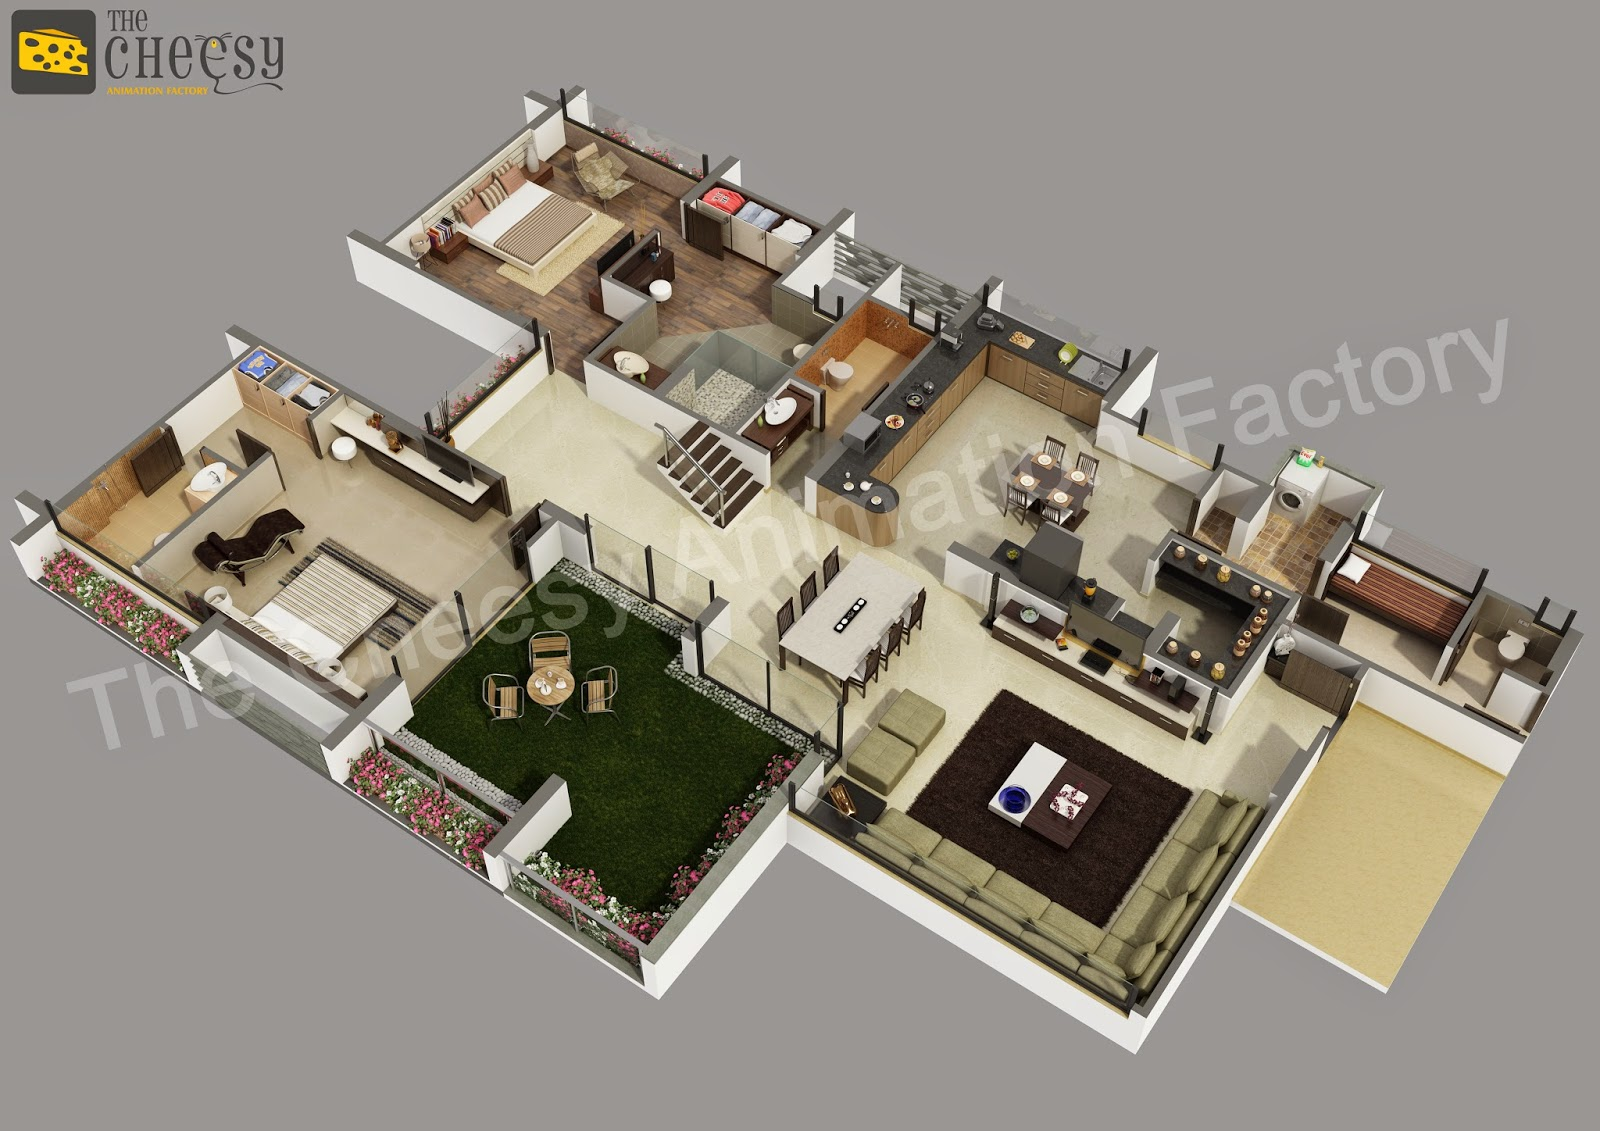 in ground architecture, ground floor house designs, in ground water, above ground house designs, in ground garage, in ground cooking, in ground home, in ground living room, villa floor plans and designs, underground home designs, on in ground house design.html